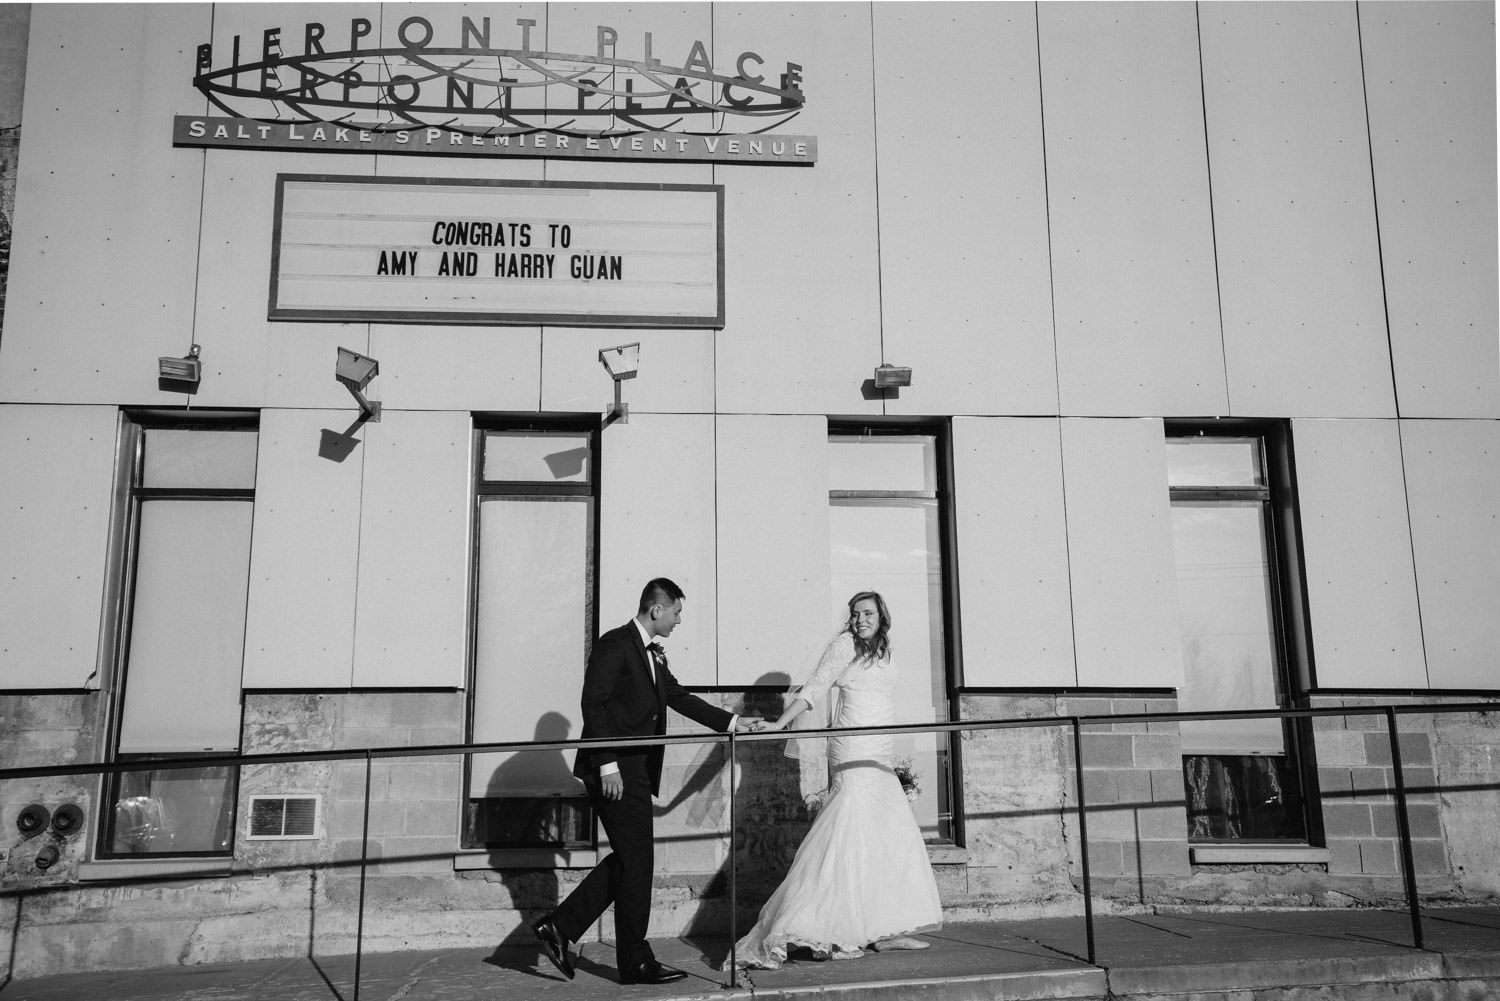 Pierpont Place wedding black and white with congrats sign photo